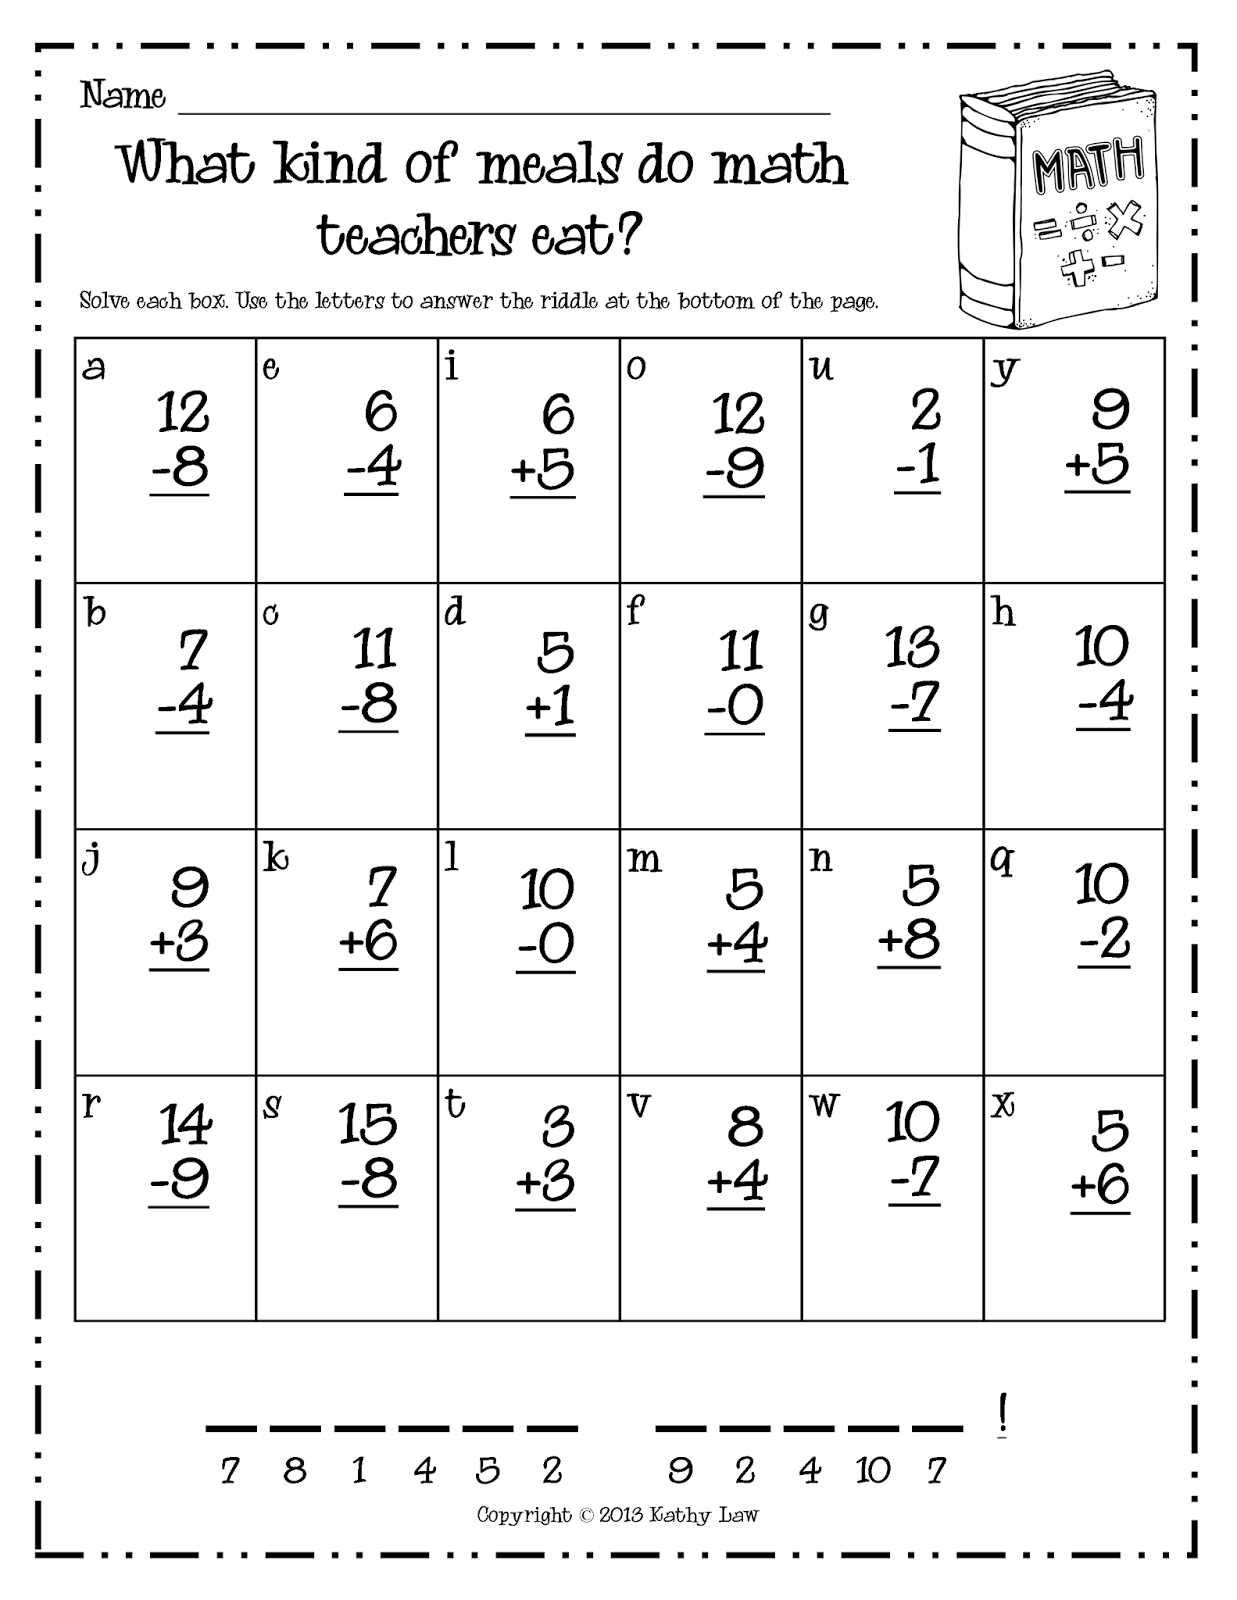 Pin By Heather Marie On Classroom First Grade Math Worksheets 1st Grade Math 1st Grade Math Worksheets [ 1600 x 1237 Pixel ]